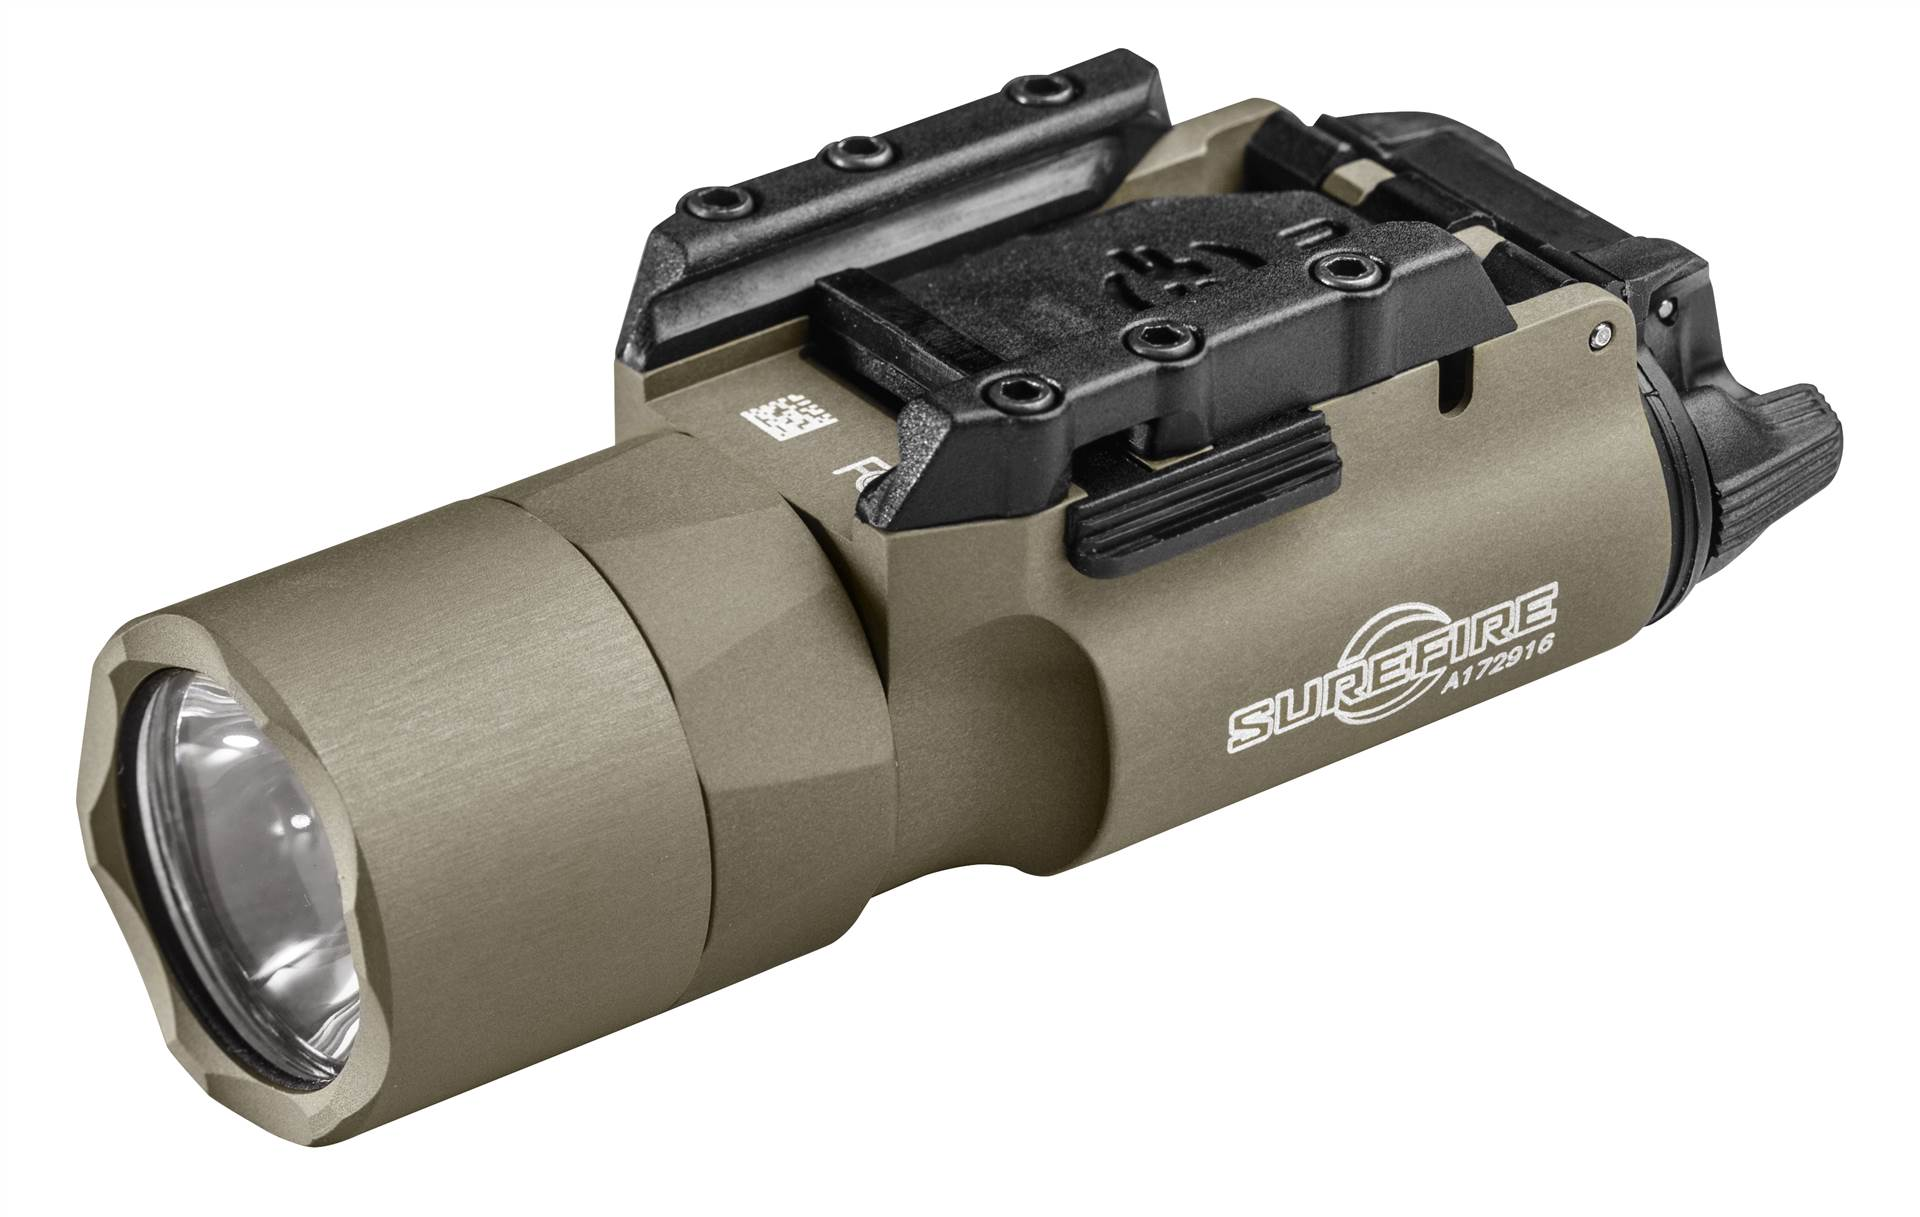 SureFire Releasing Desert Tan X300 Ultra Next Month